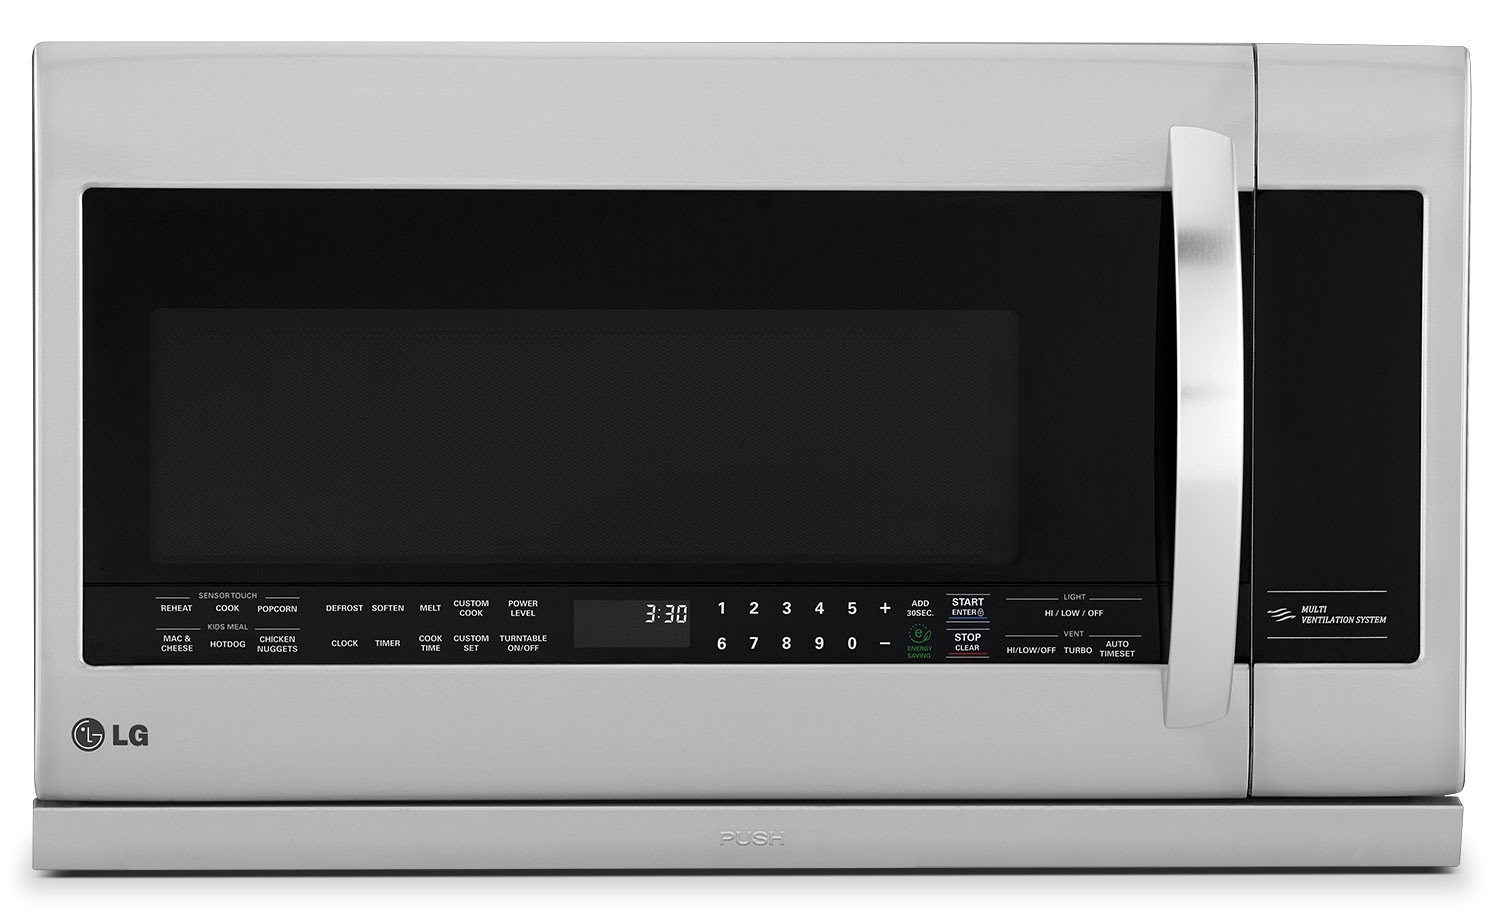 LG Appliances Stainless Steel Over-the-Range Microwave (2.2 Cu. Ft.) - LMV2257ST